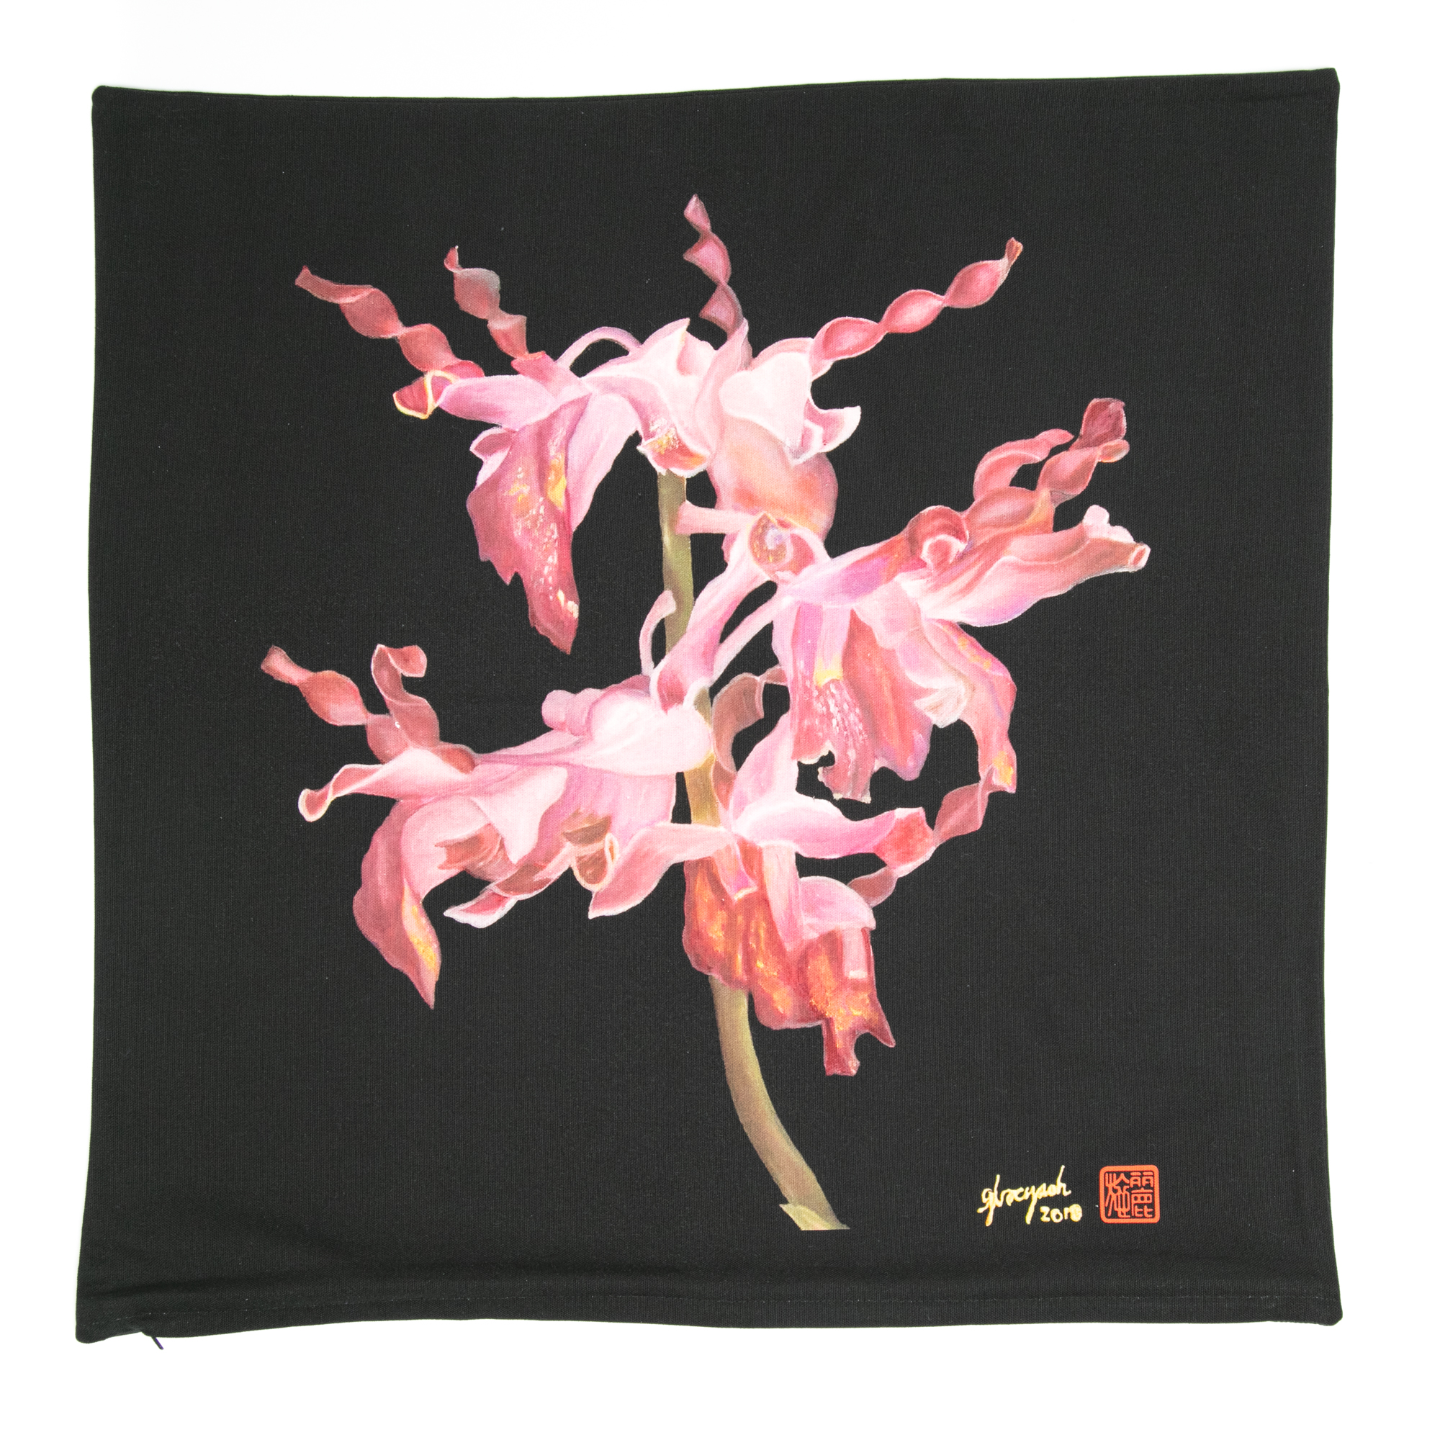 SOS 5 Orchids Cushion Cover - Dendrobium Margaret Thatcher